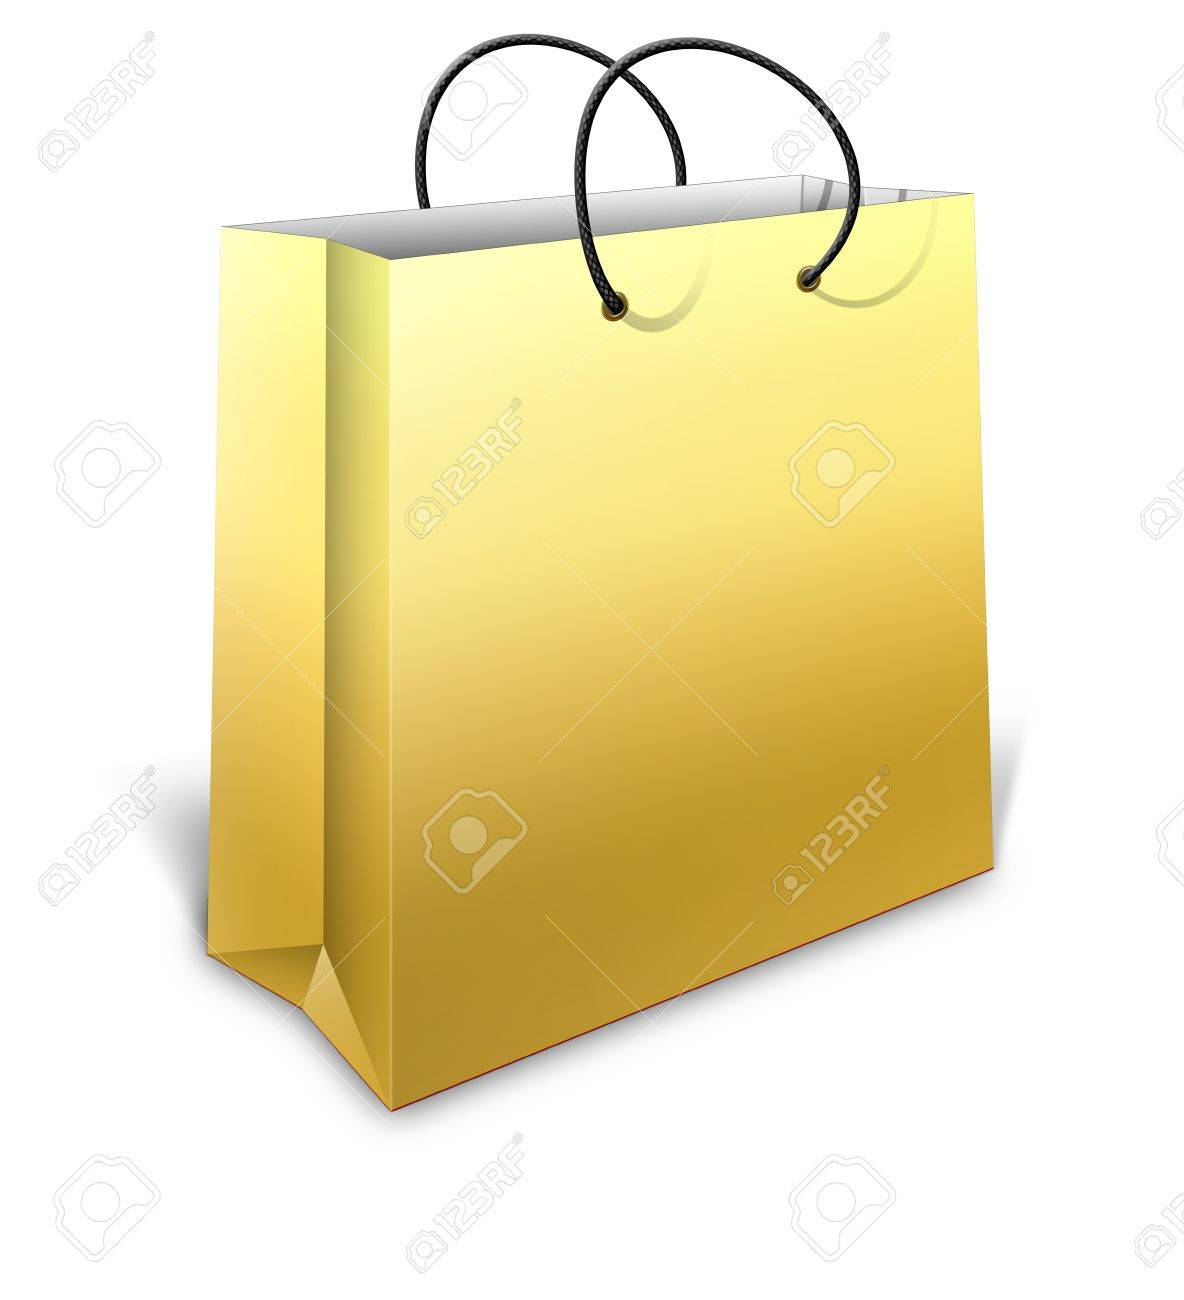 3D Gold Shopping Bag For Gifts On White Background Stock Photo ...